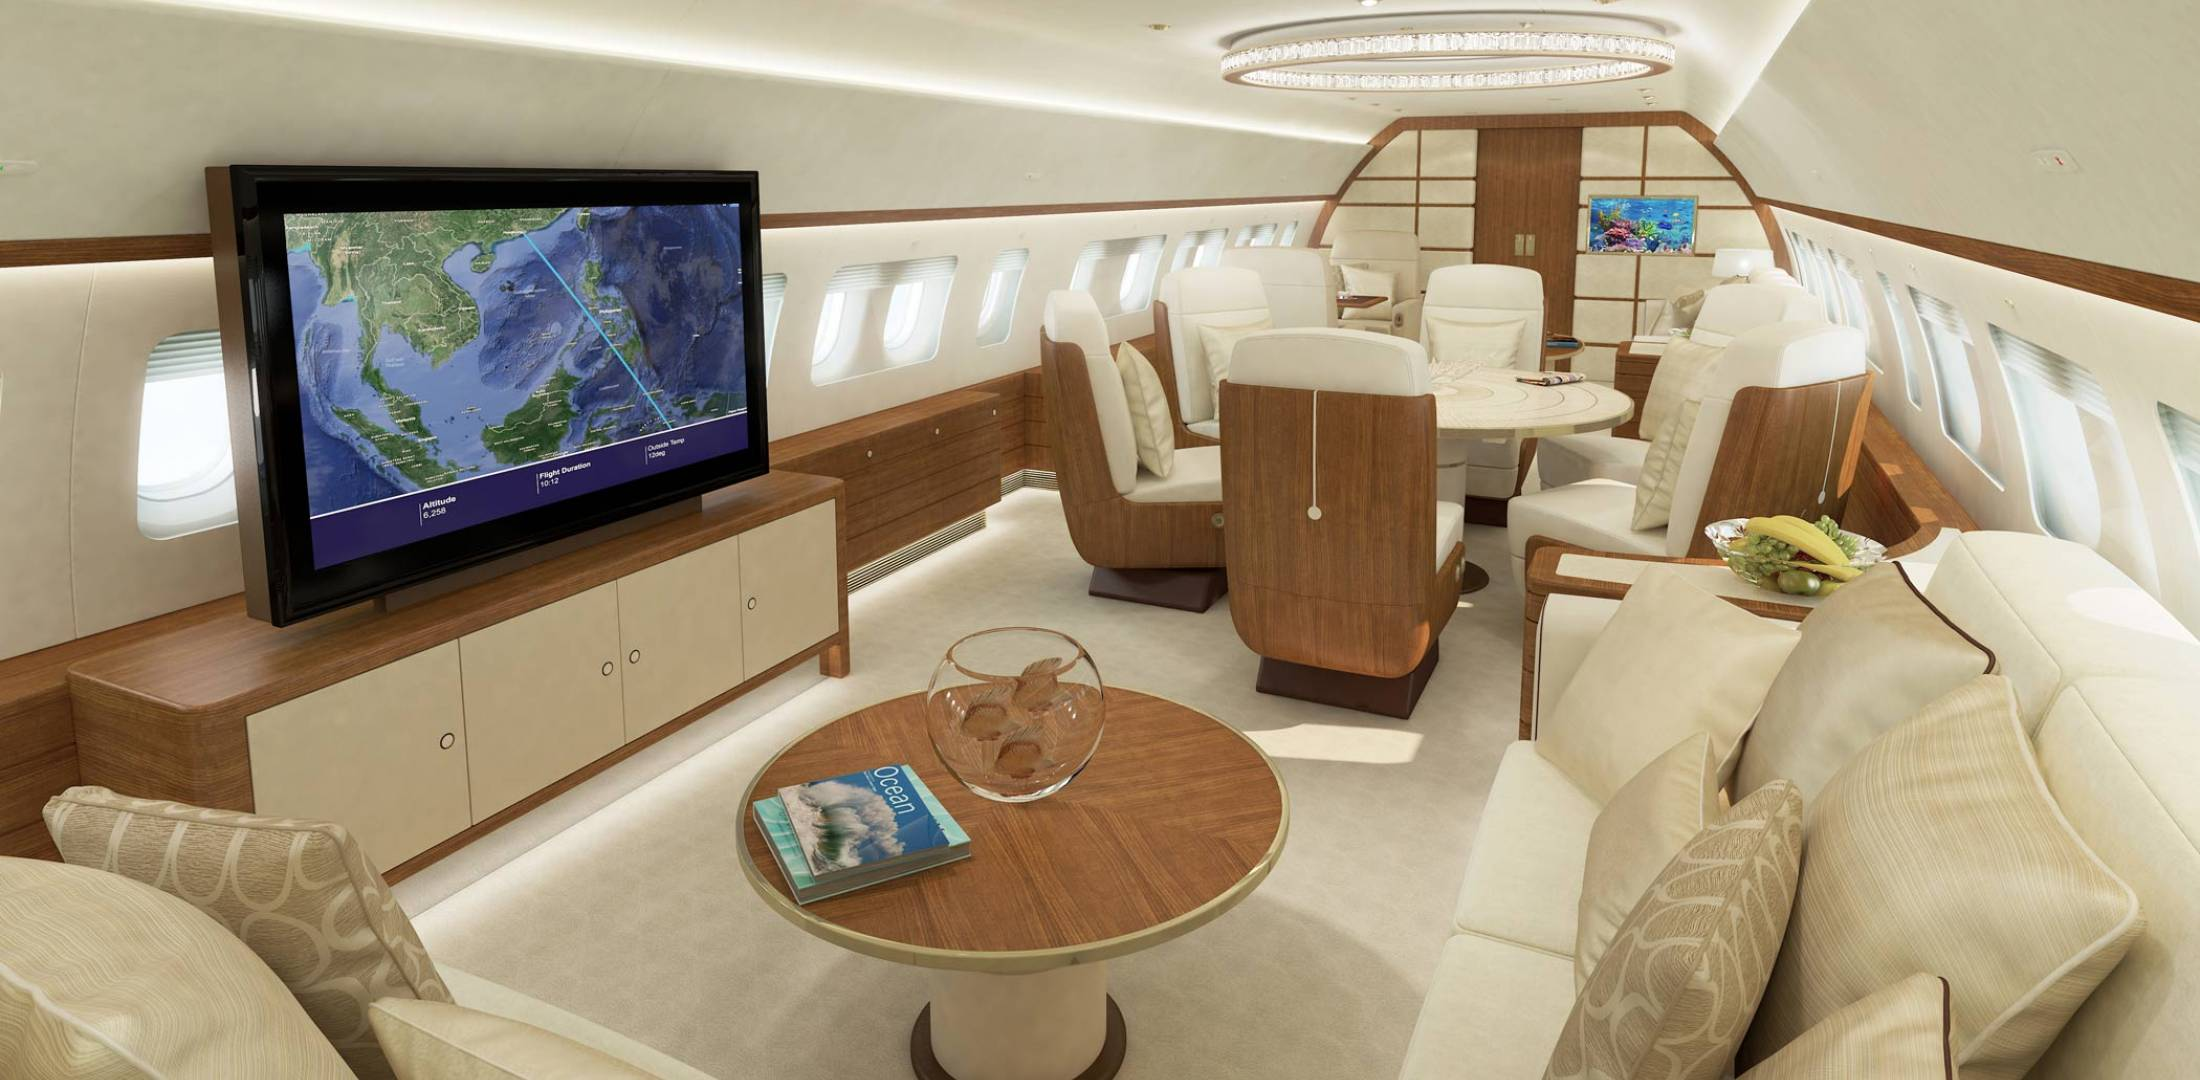 Jet Aviation is keeping up with the latest in business jet cabin tech.